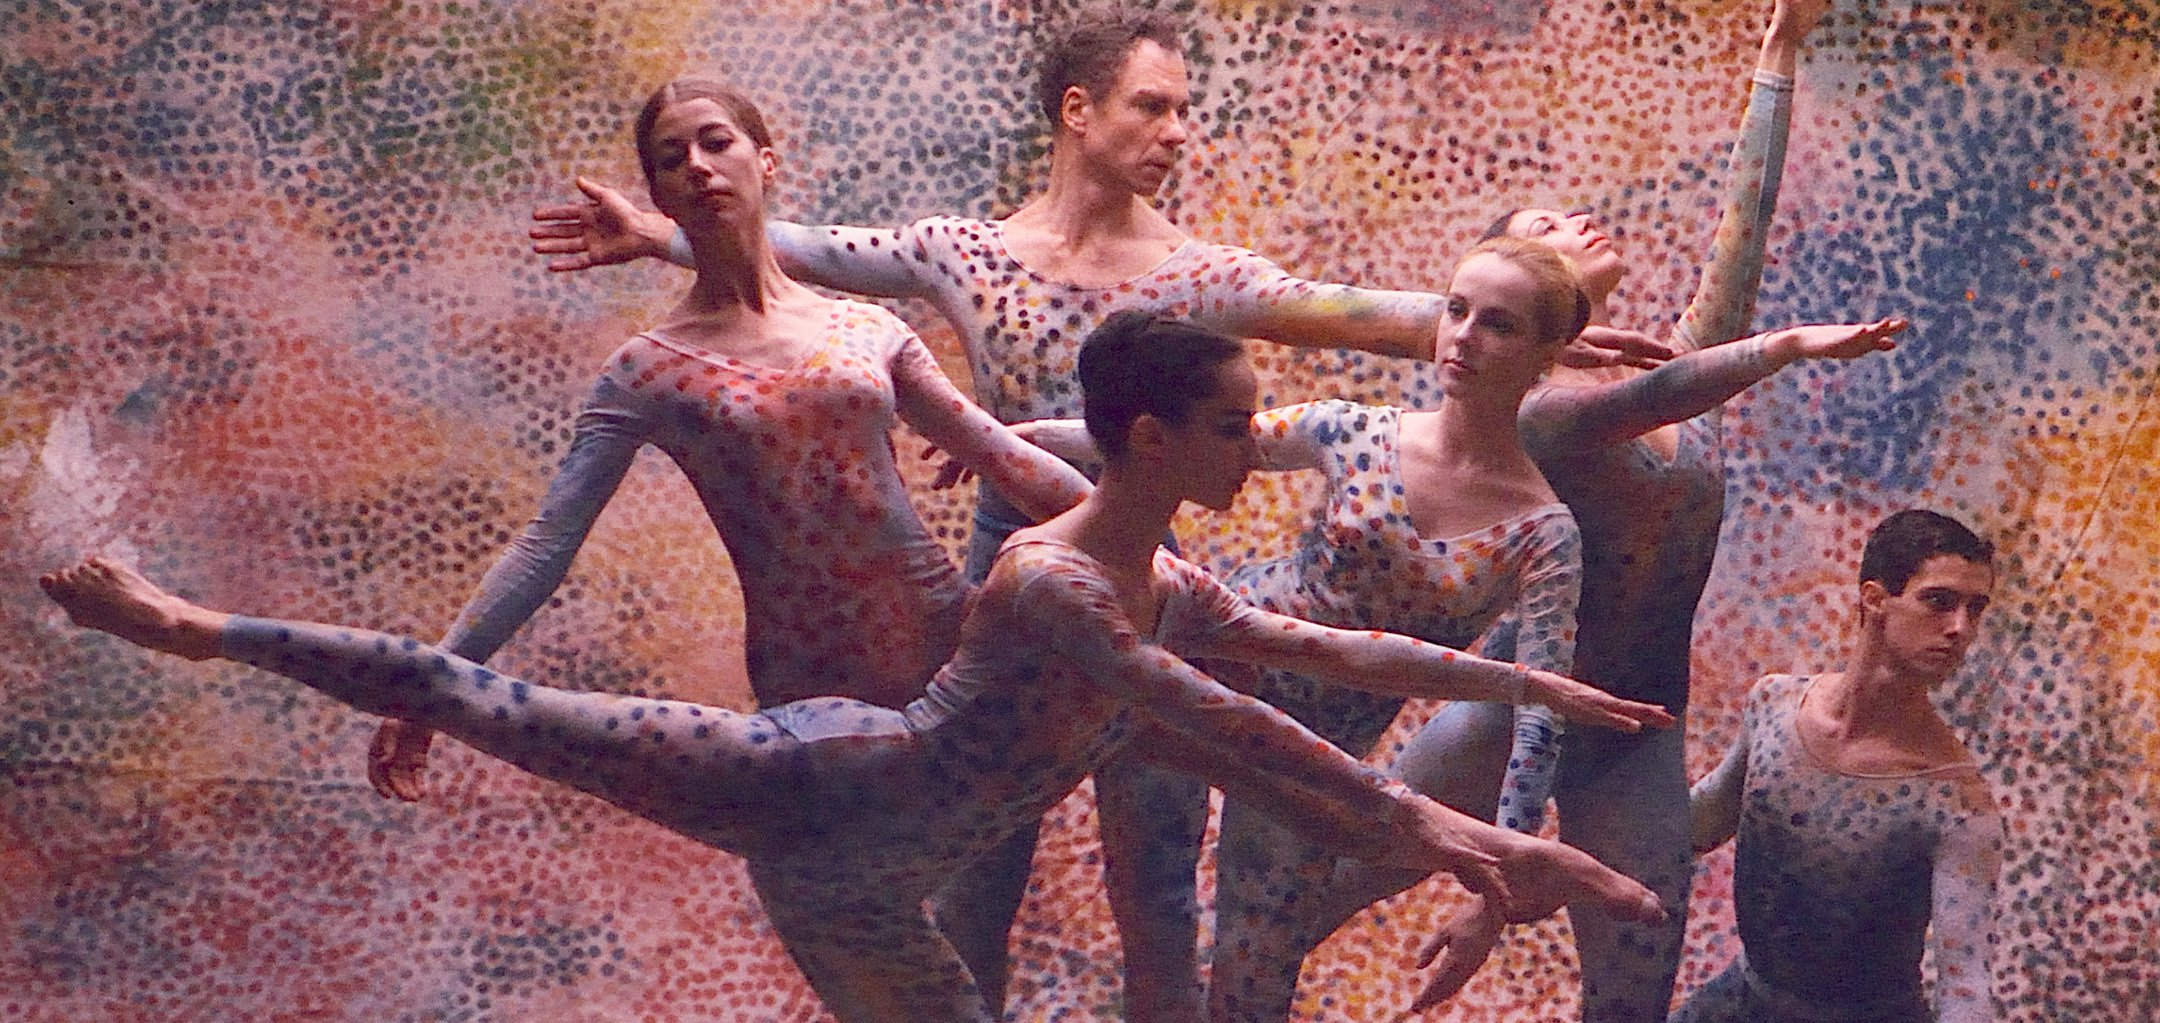 Dancers in Cunningham (2019), directed by Alla Kovgan